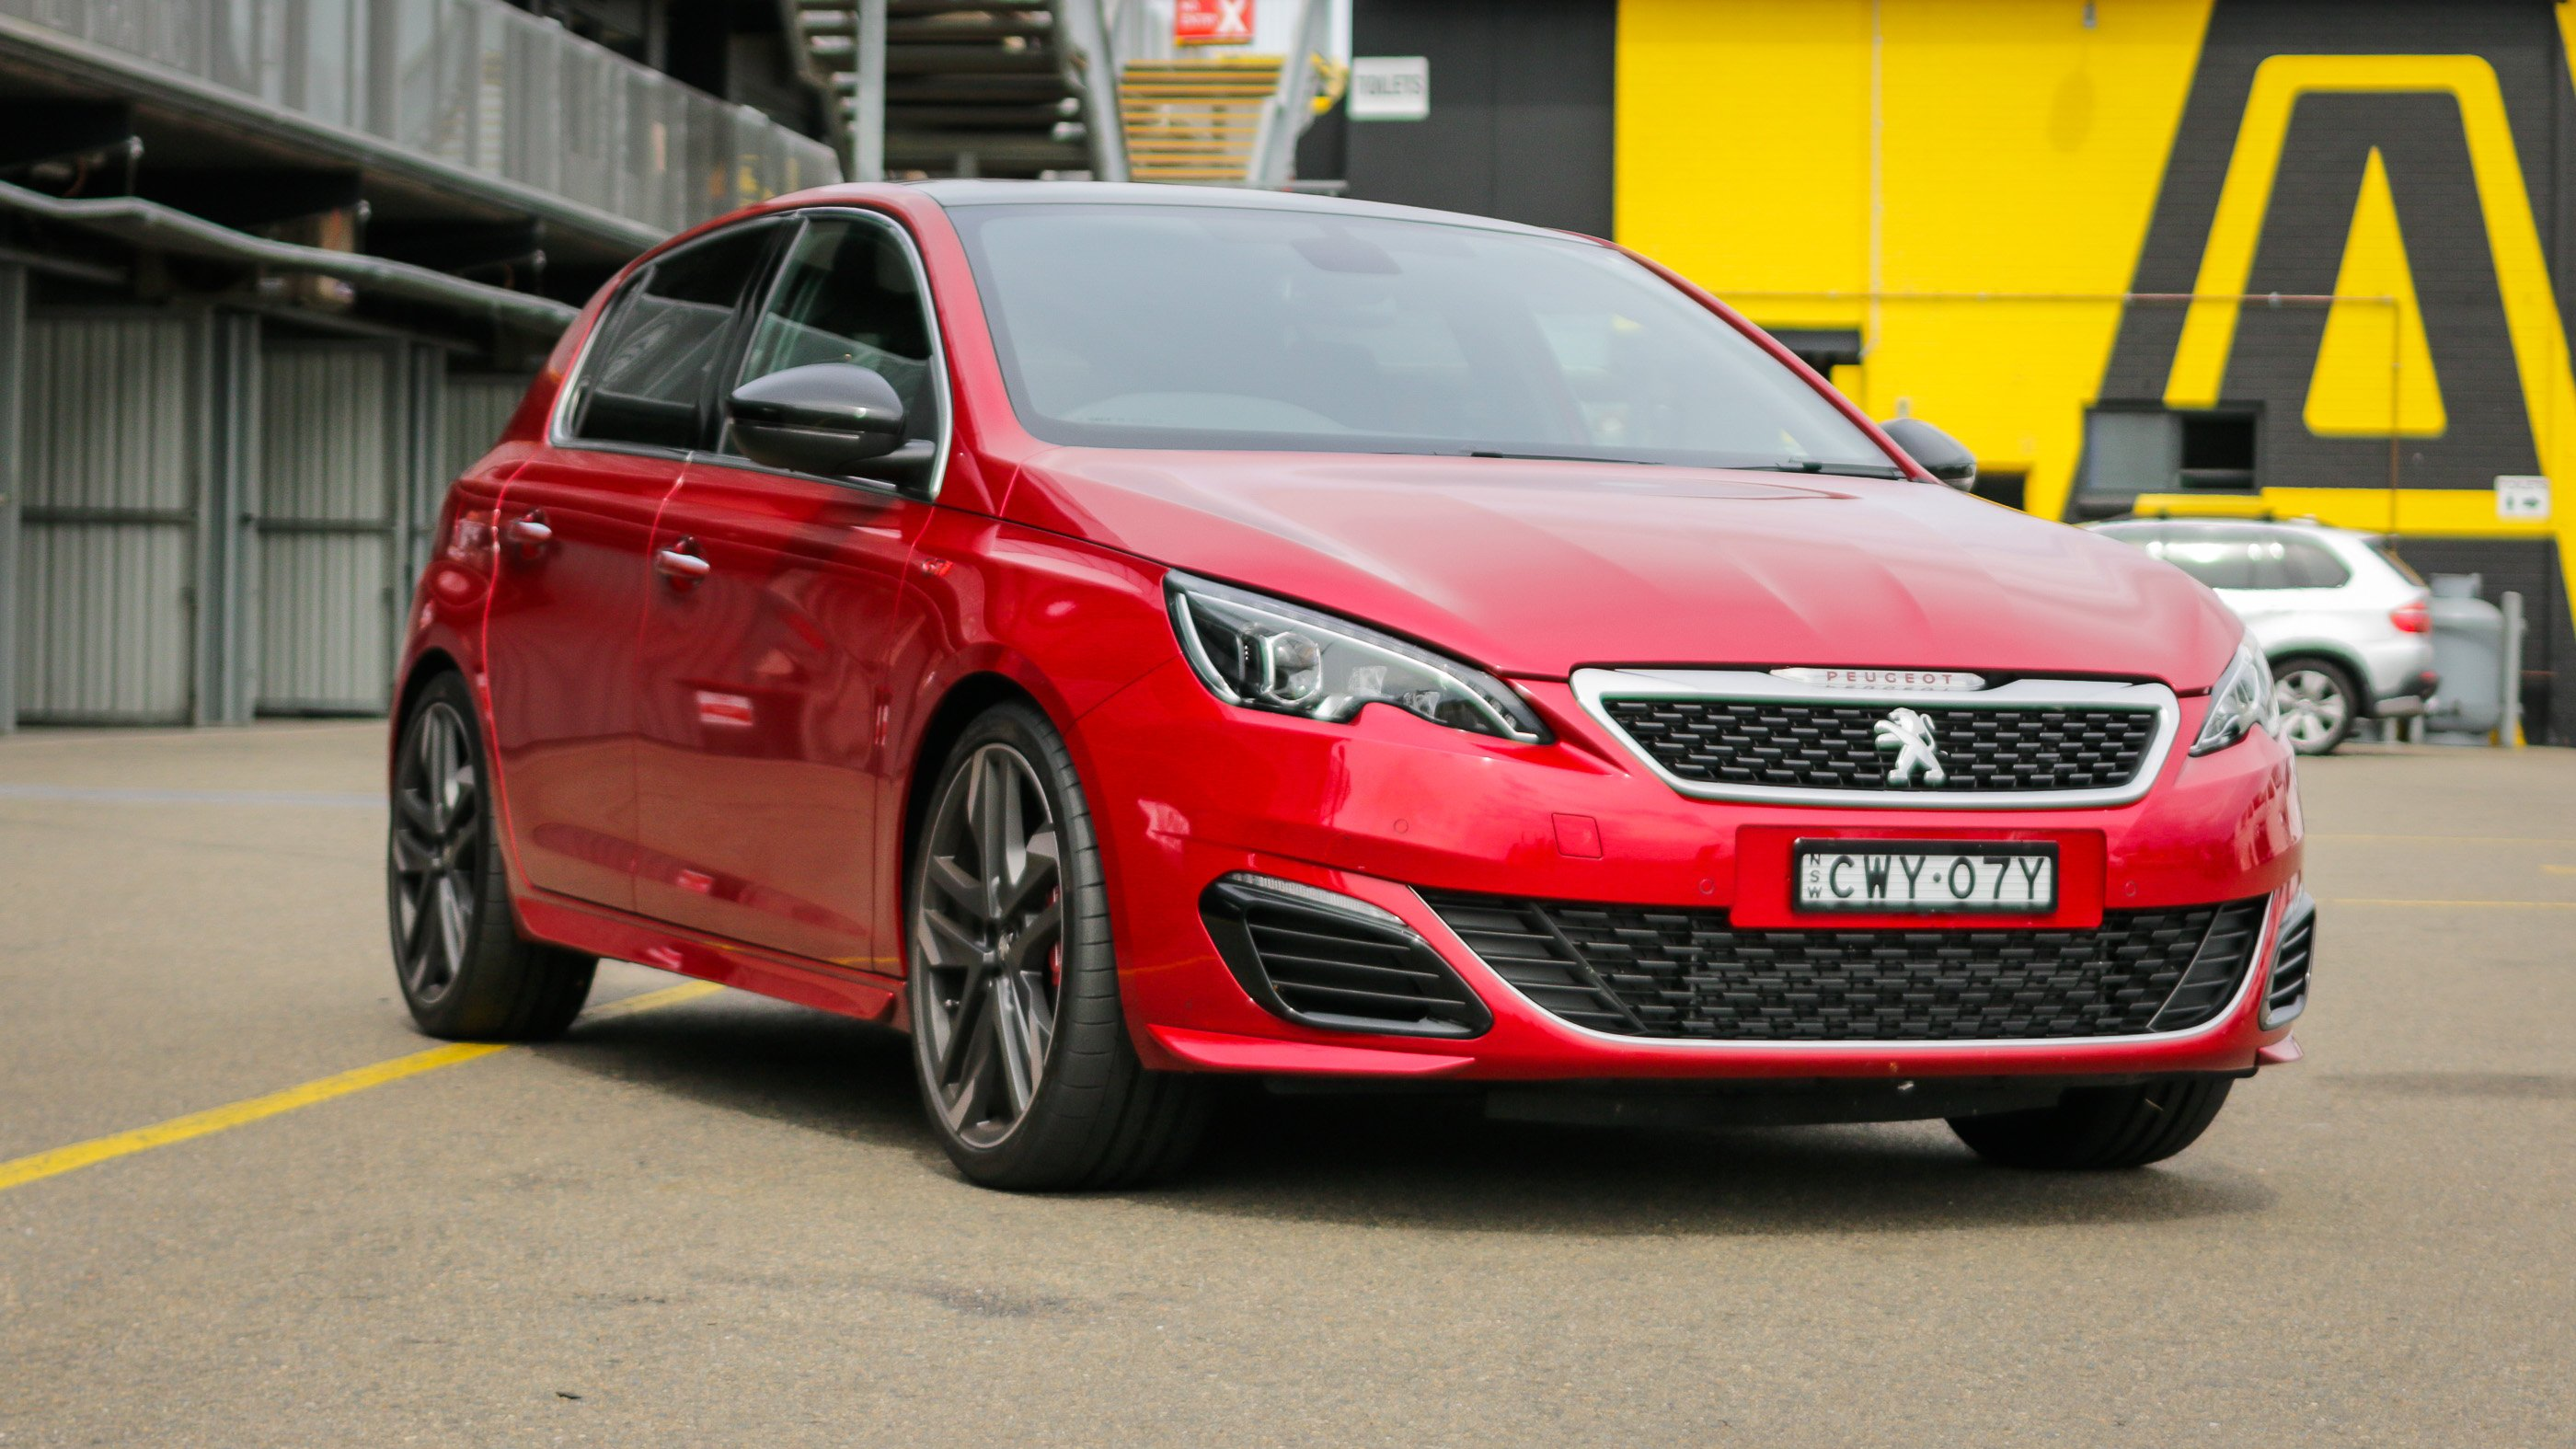 2016 peugeot 308 gti review quick drive photos caradvice. Black Bedroom Furniture Sets. Home Design Ideas